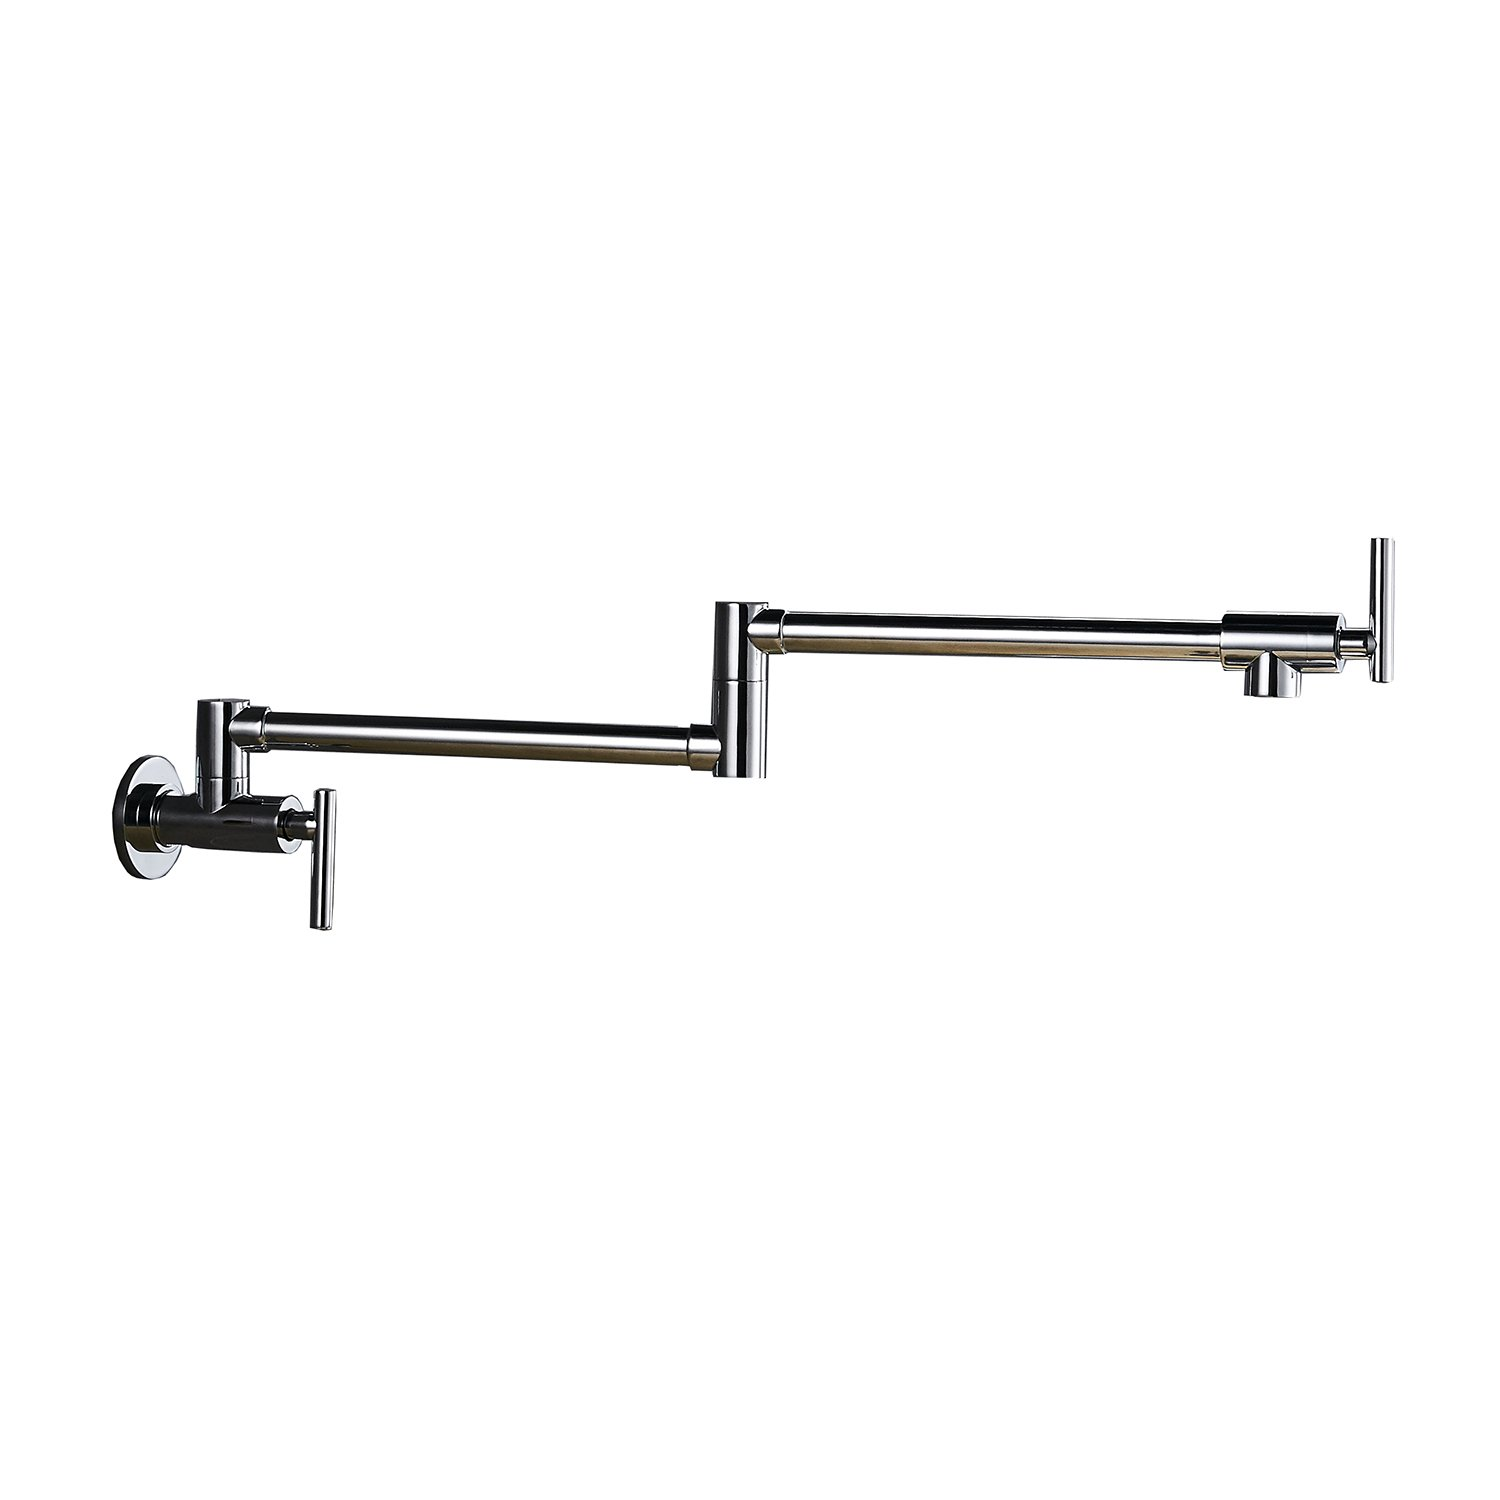 BWE Chrome Commercial Brass Pot Filler Faucet Folding Stretchable Double Joint Swing Arm Wall Mount Kitchen Faucet